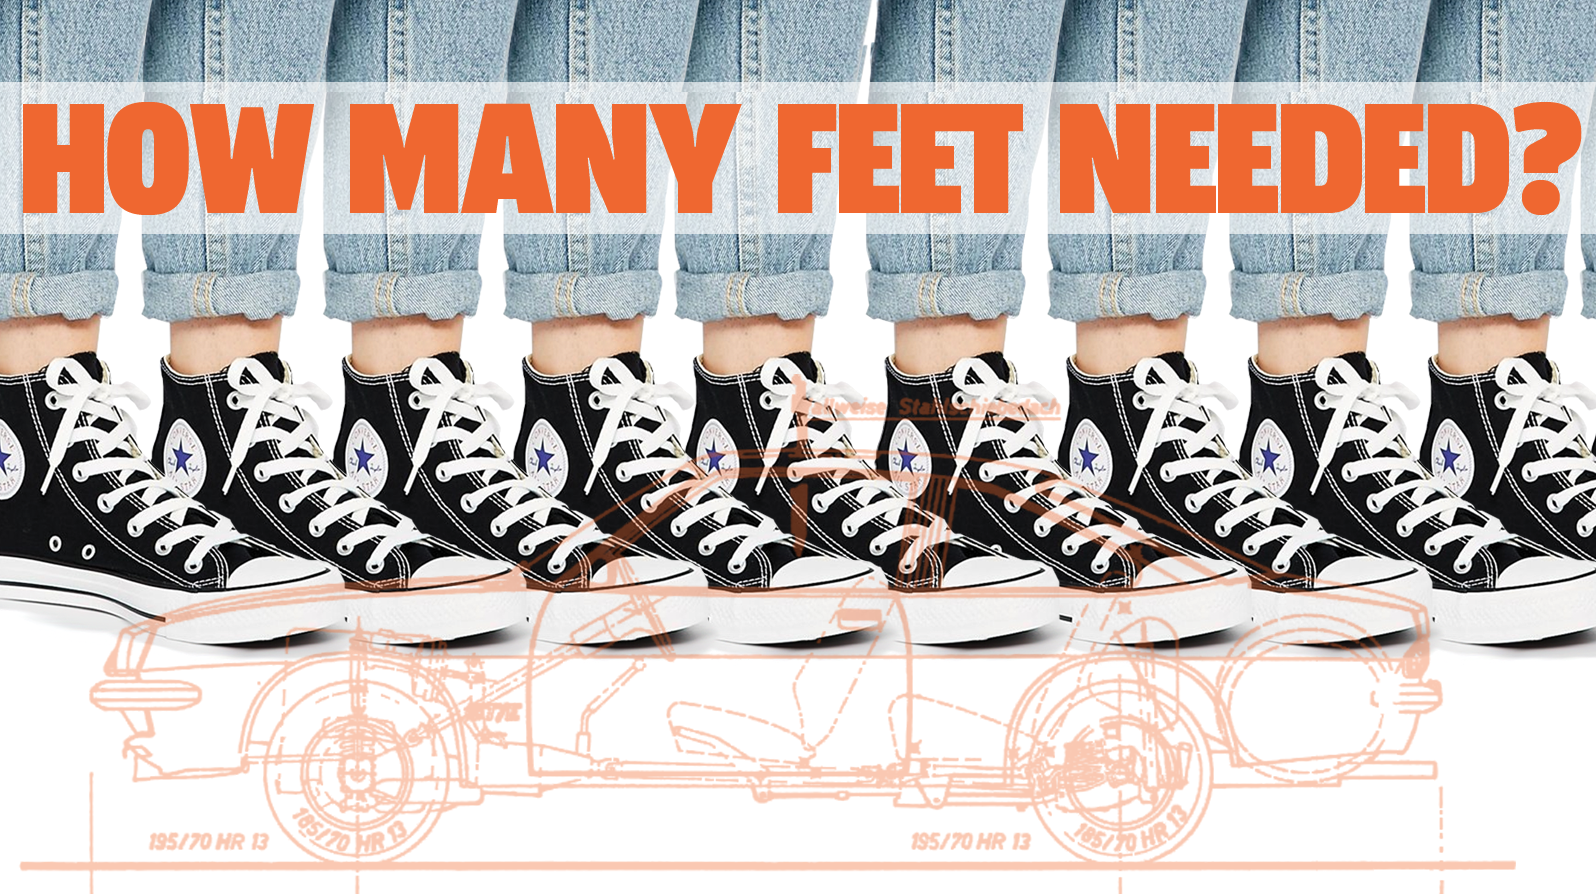 Quick Question: What's The Most A Car Can Demand Of Your Feet?